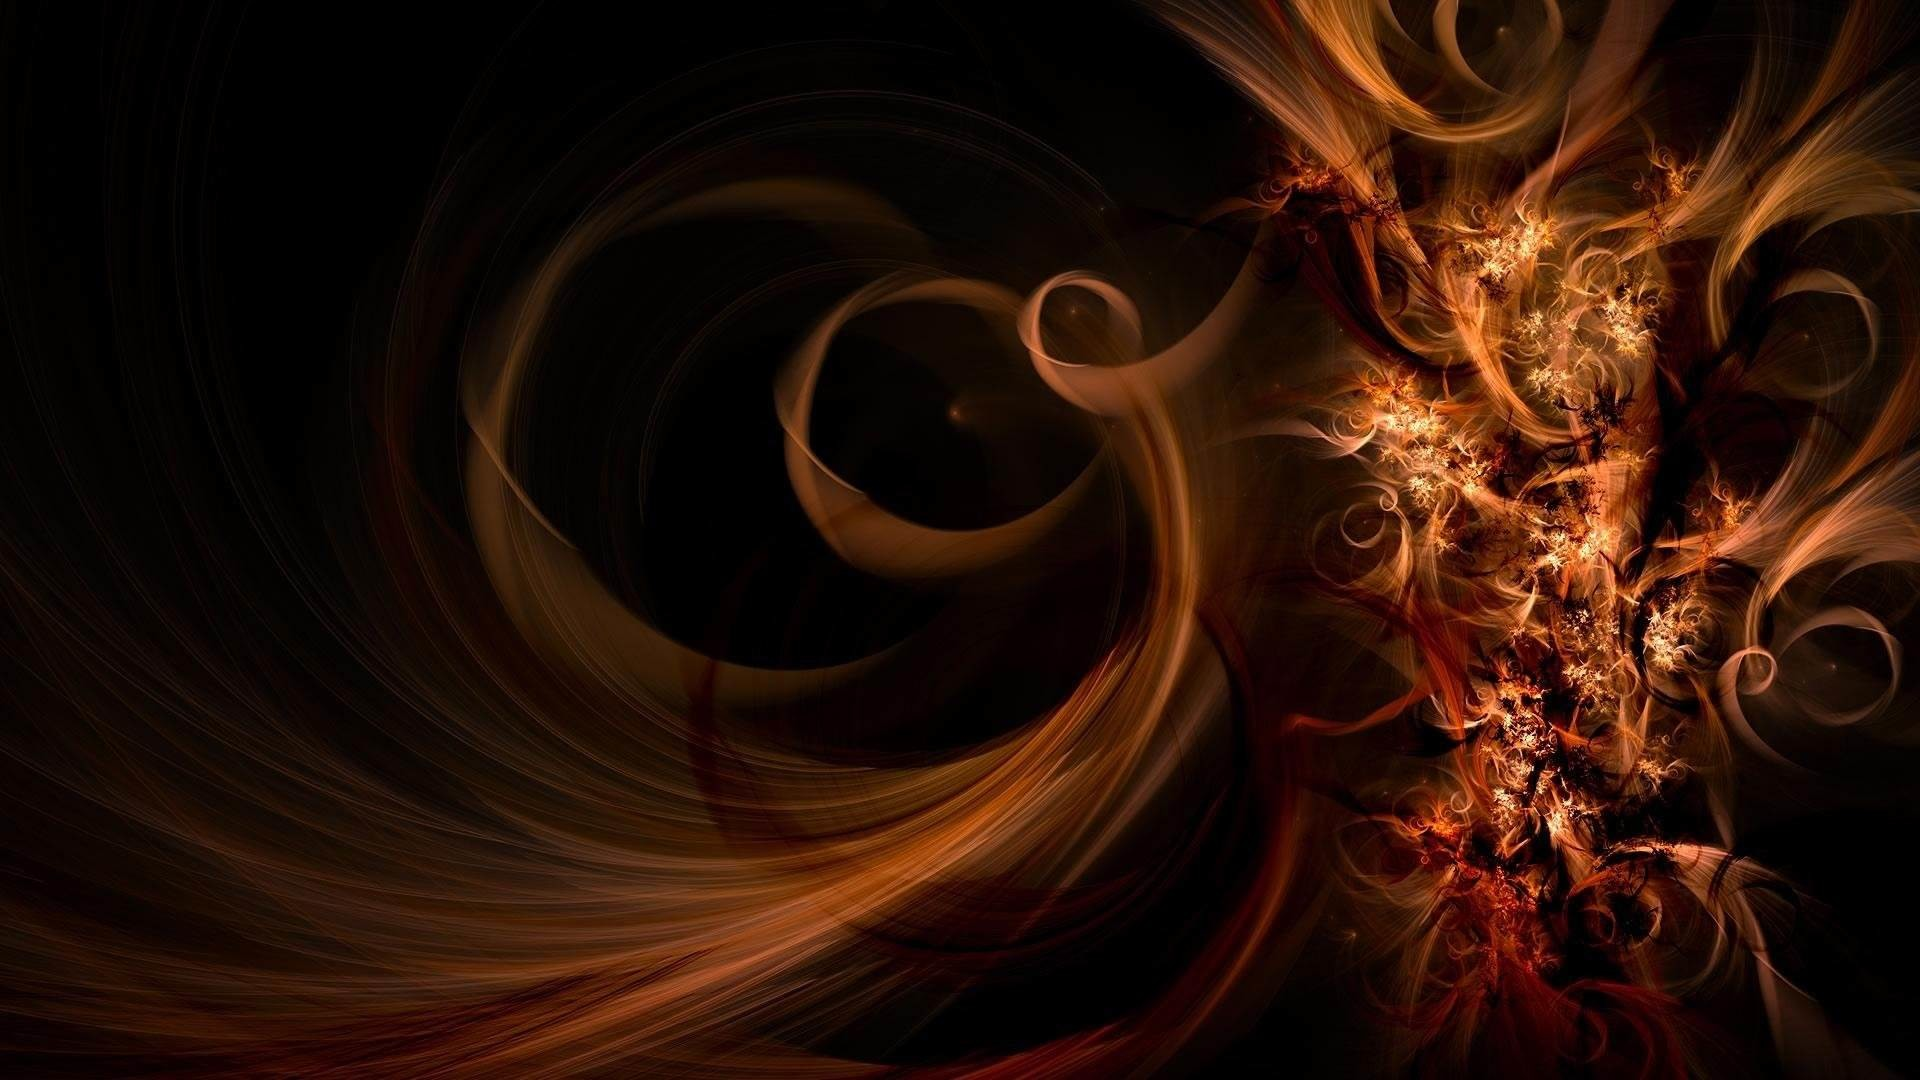 Fractal Wallpapers 1920×1080 Fractal Wallpapers 1080p | Adorable Wallpapers